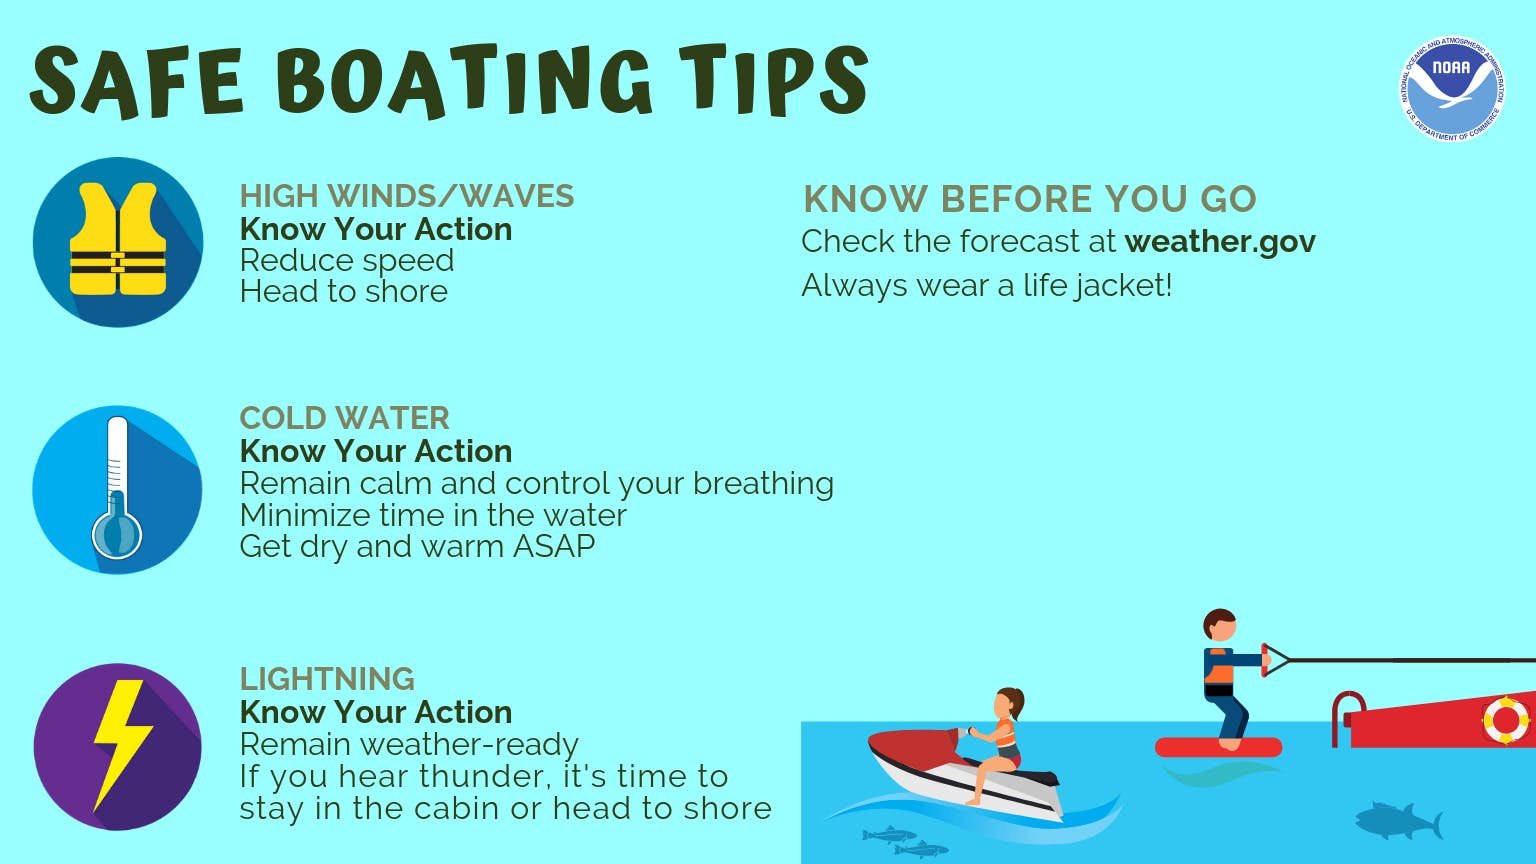 BoatSafetyTips-2019.png